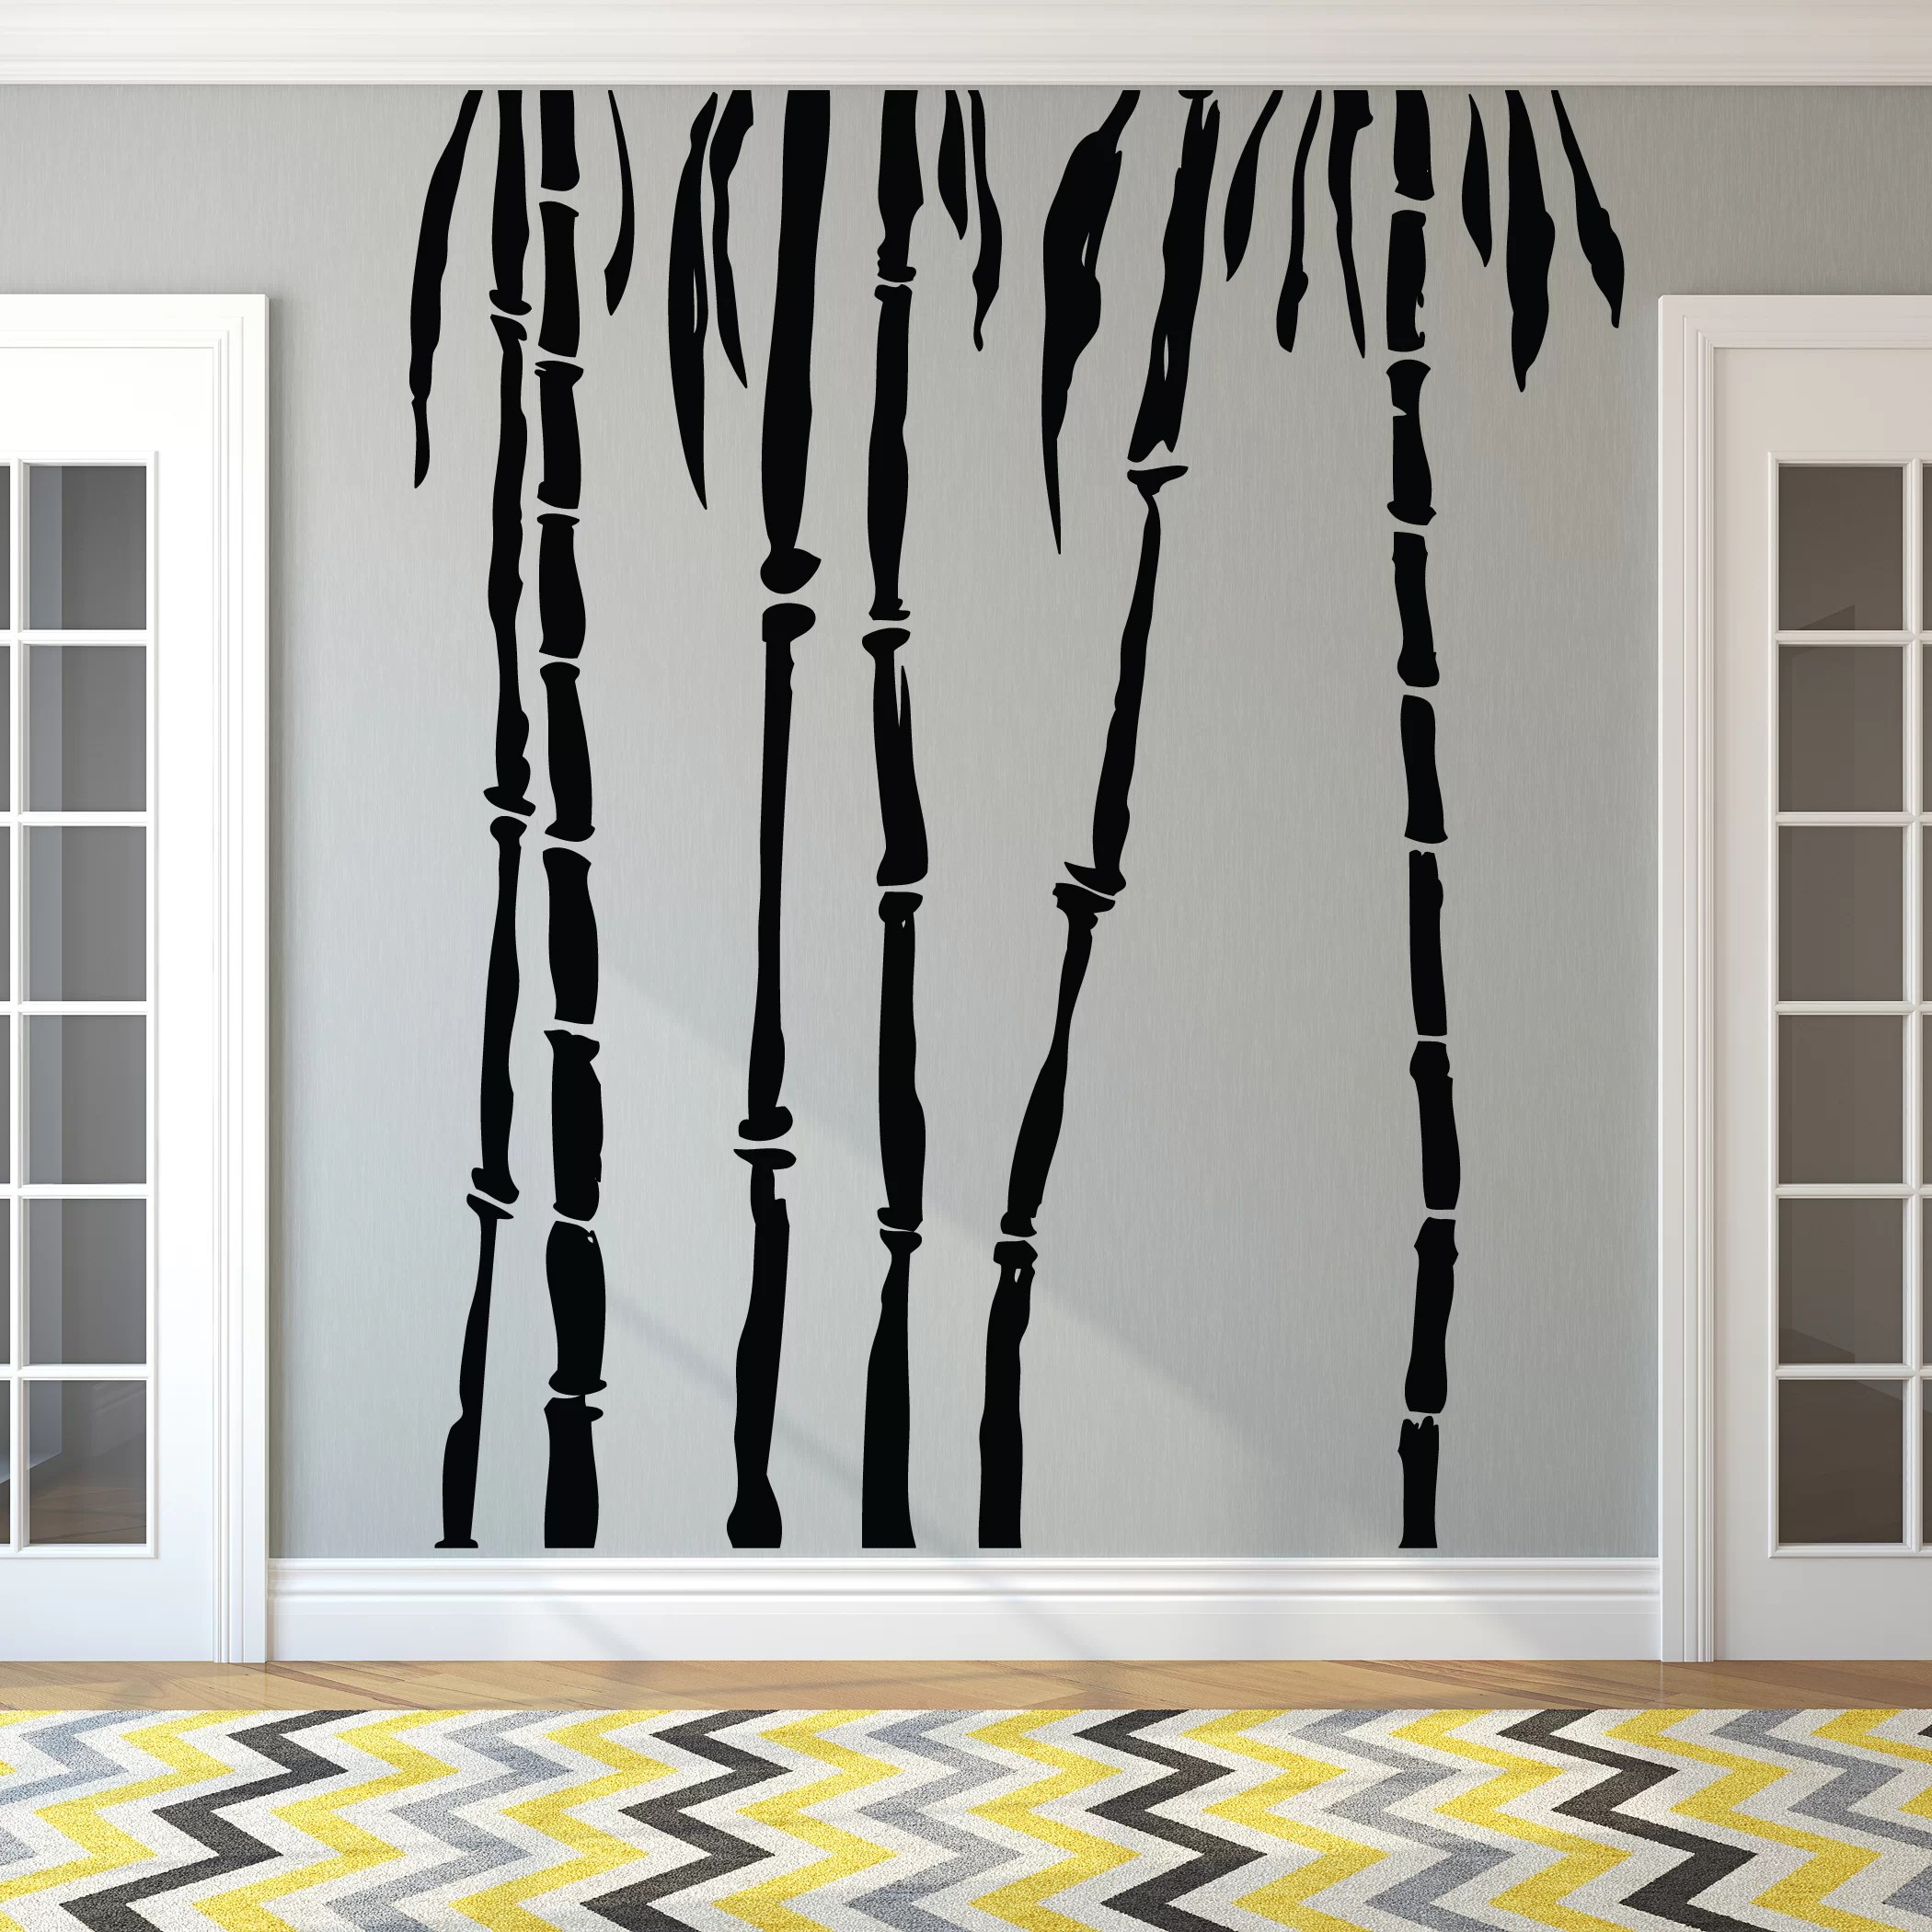 How To Separate A Room Without A Wall Bamboo Trees Wall Decal